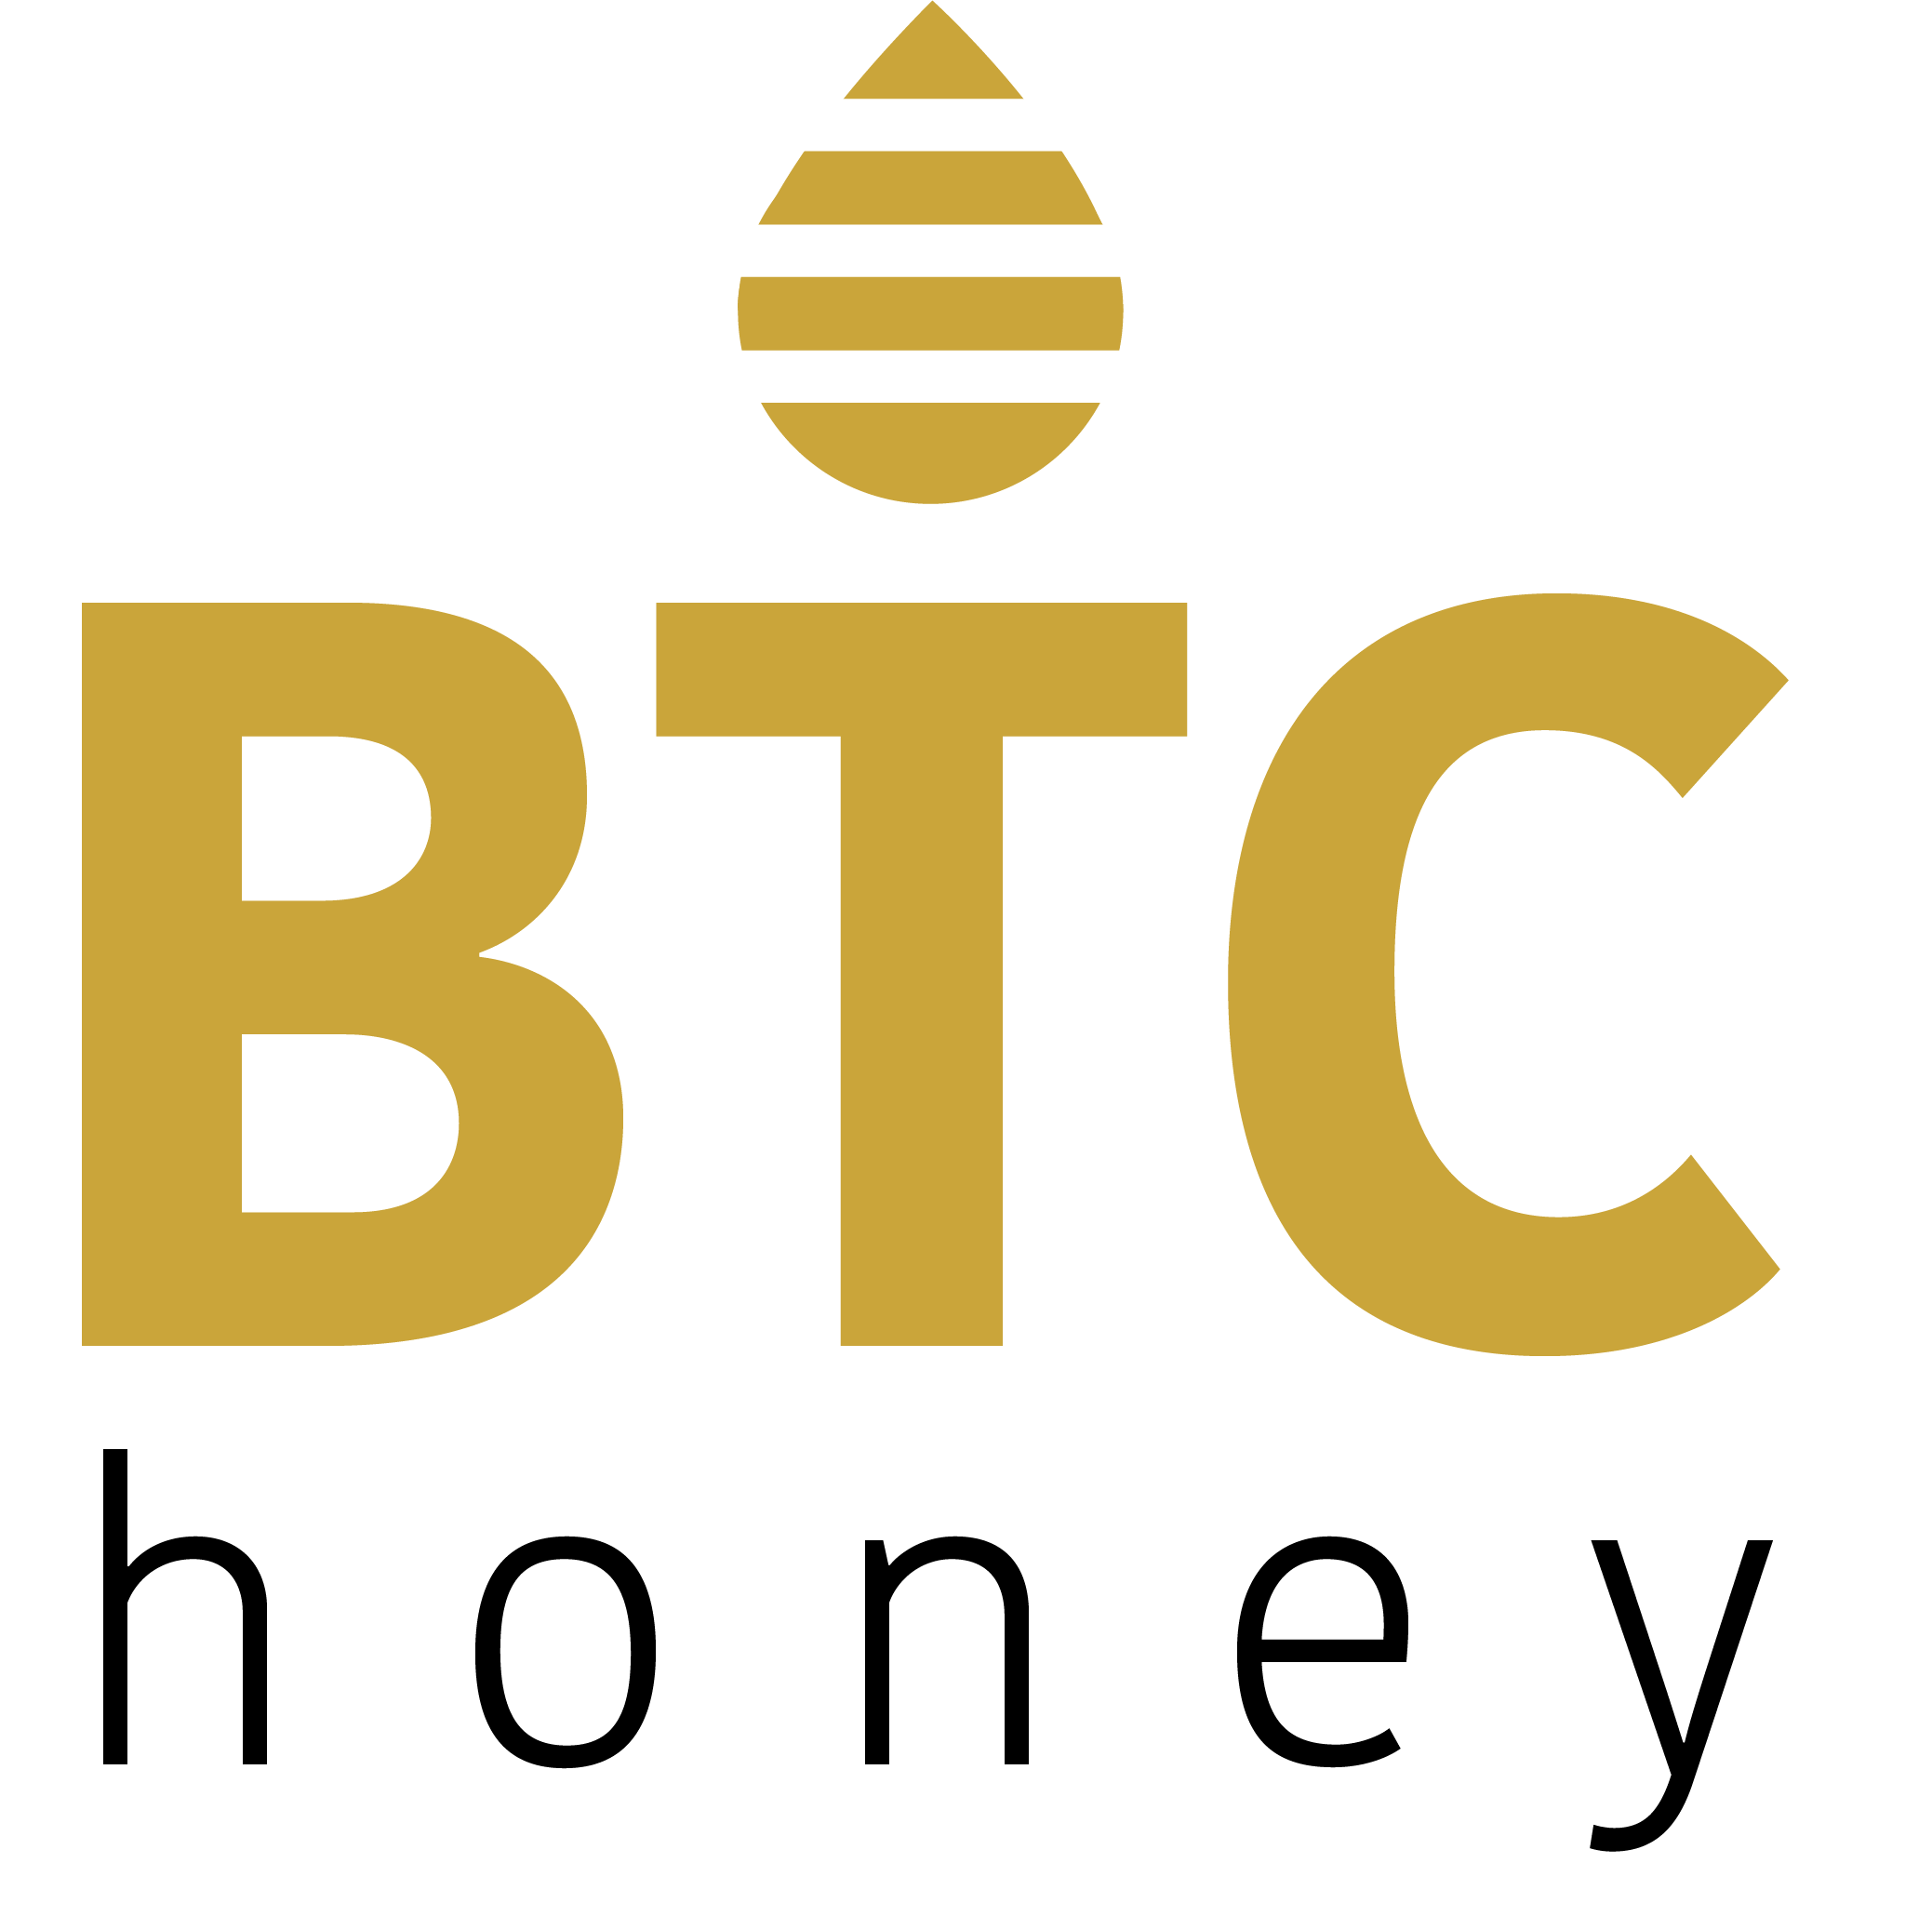 BTC honey